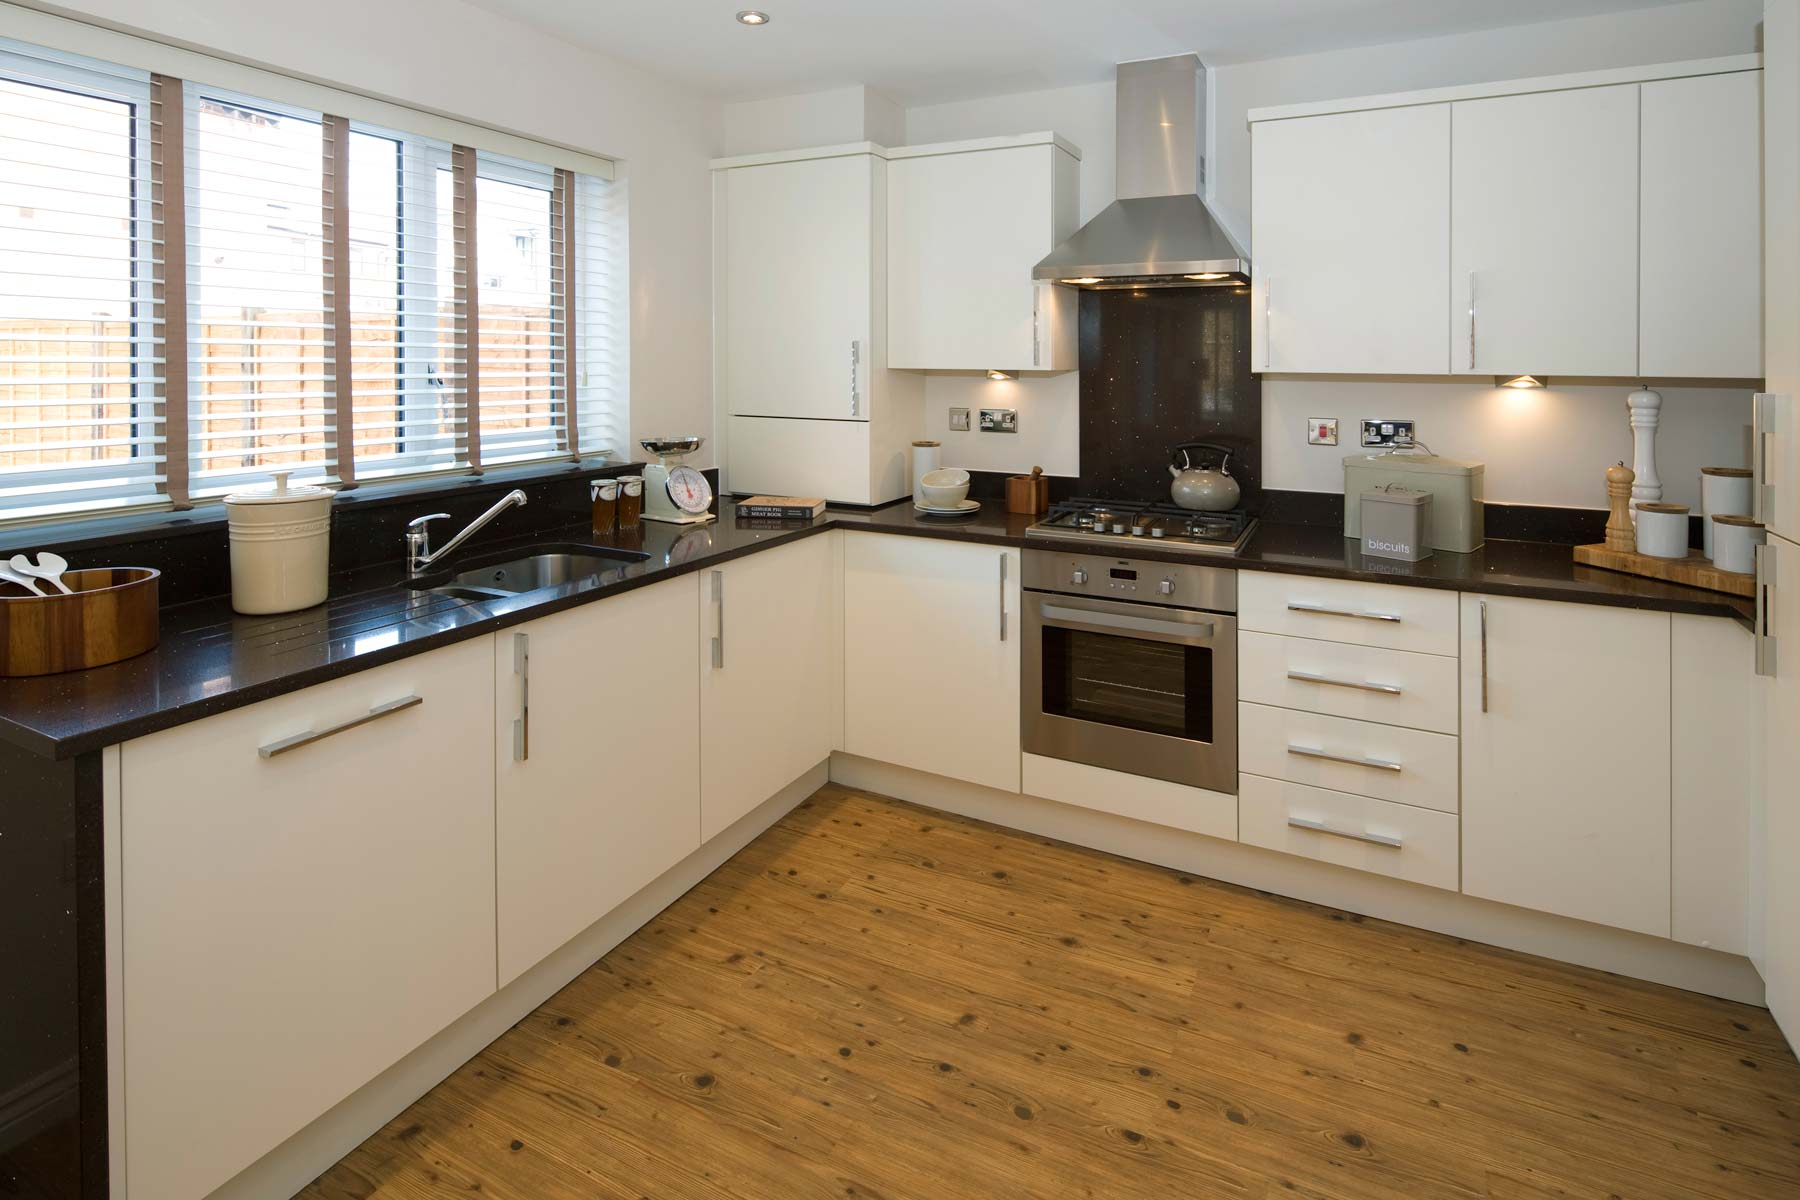 A Typical Taylor Wimpey Showhome Kitchen Leybourne (6)